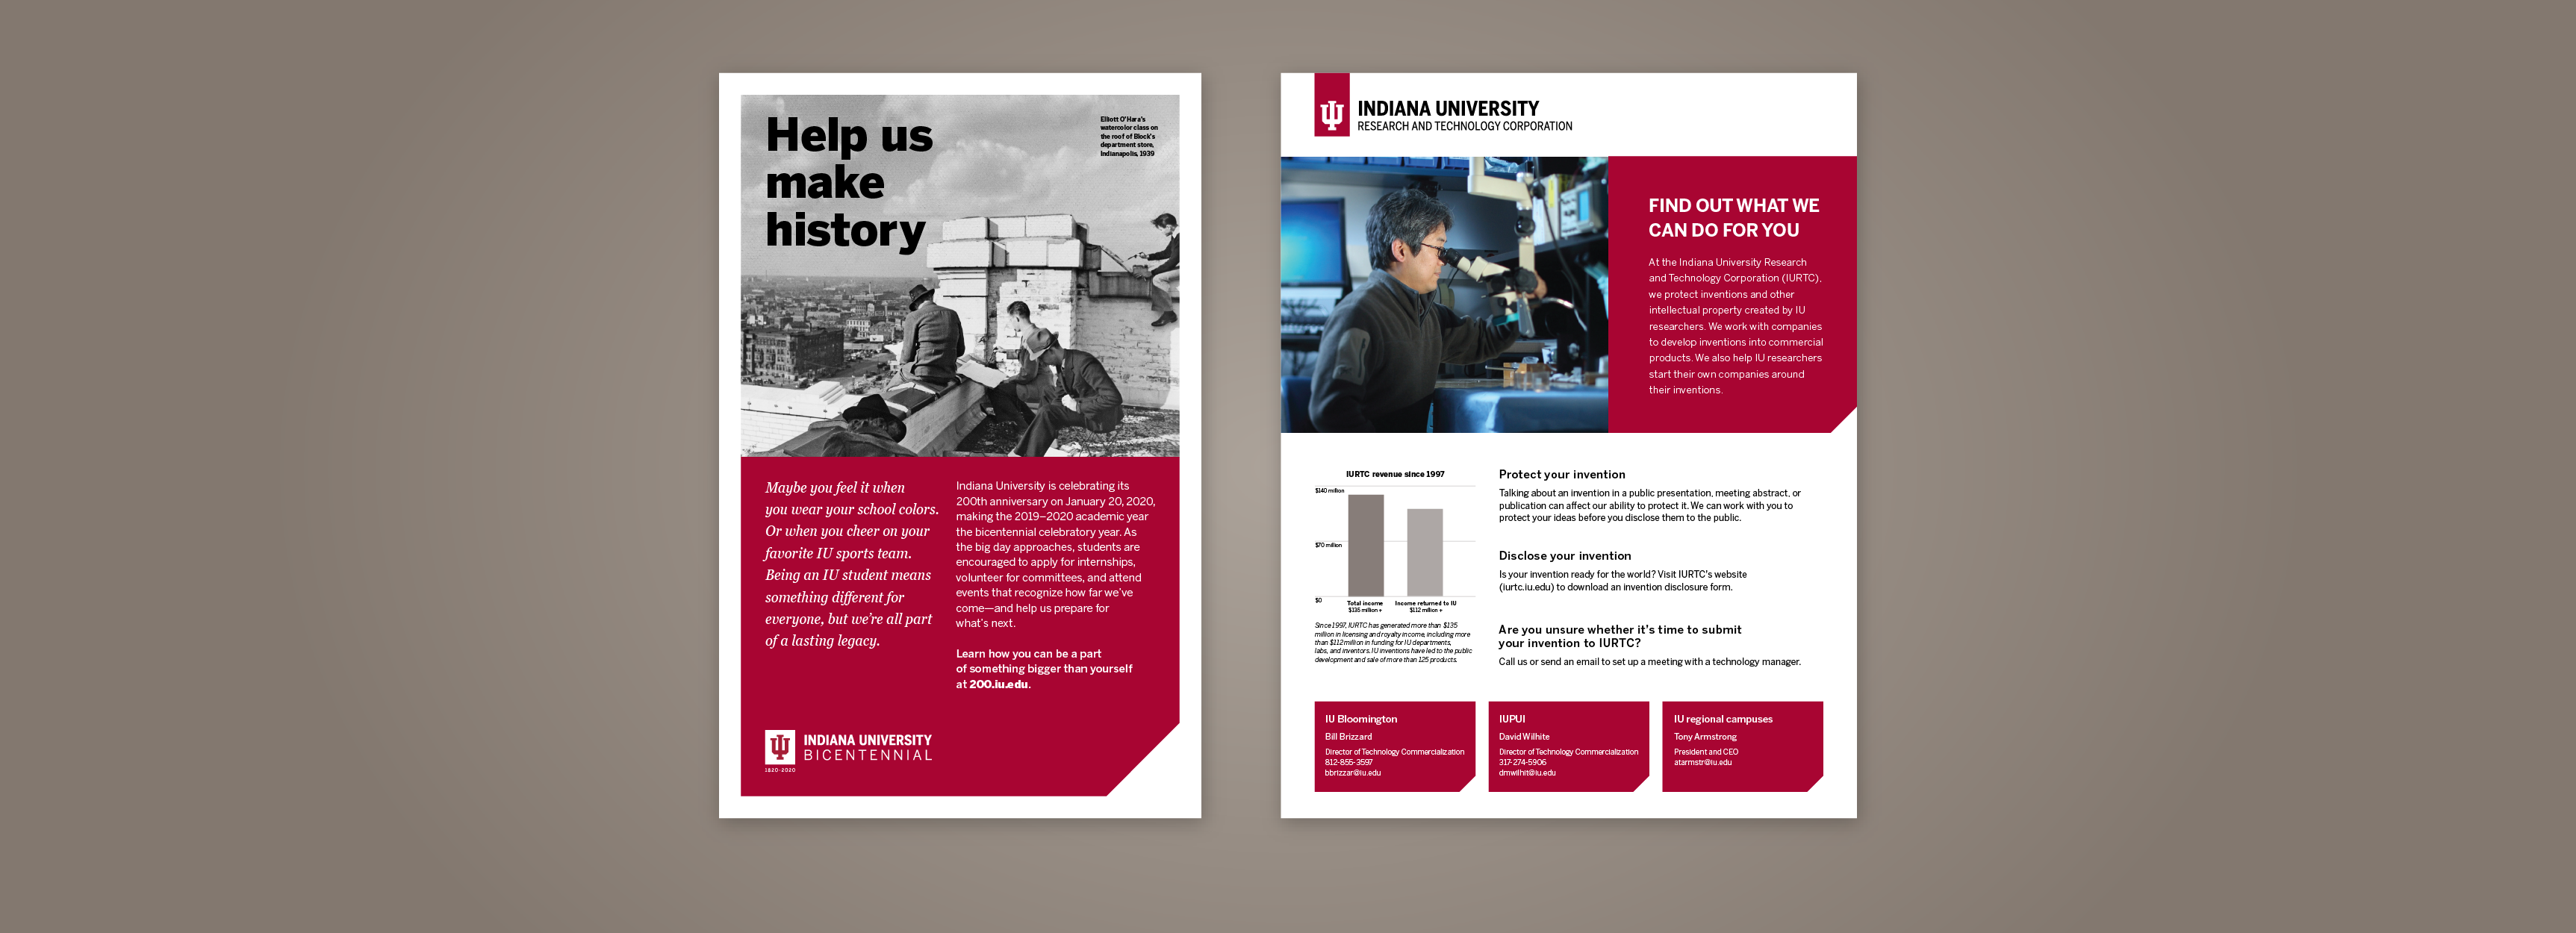 Two examples of flyers, one for the IU Bicentennial and one for Research and Technology Corporation